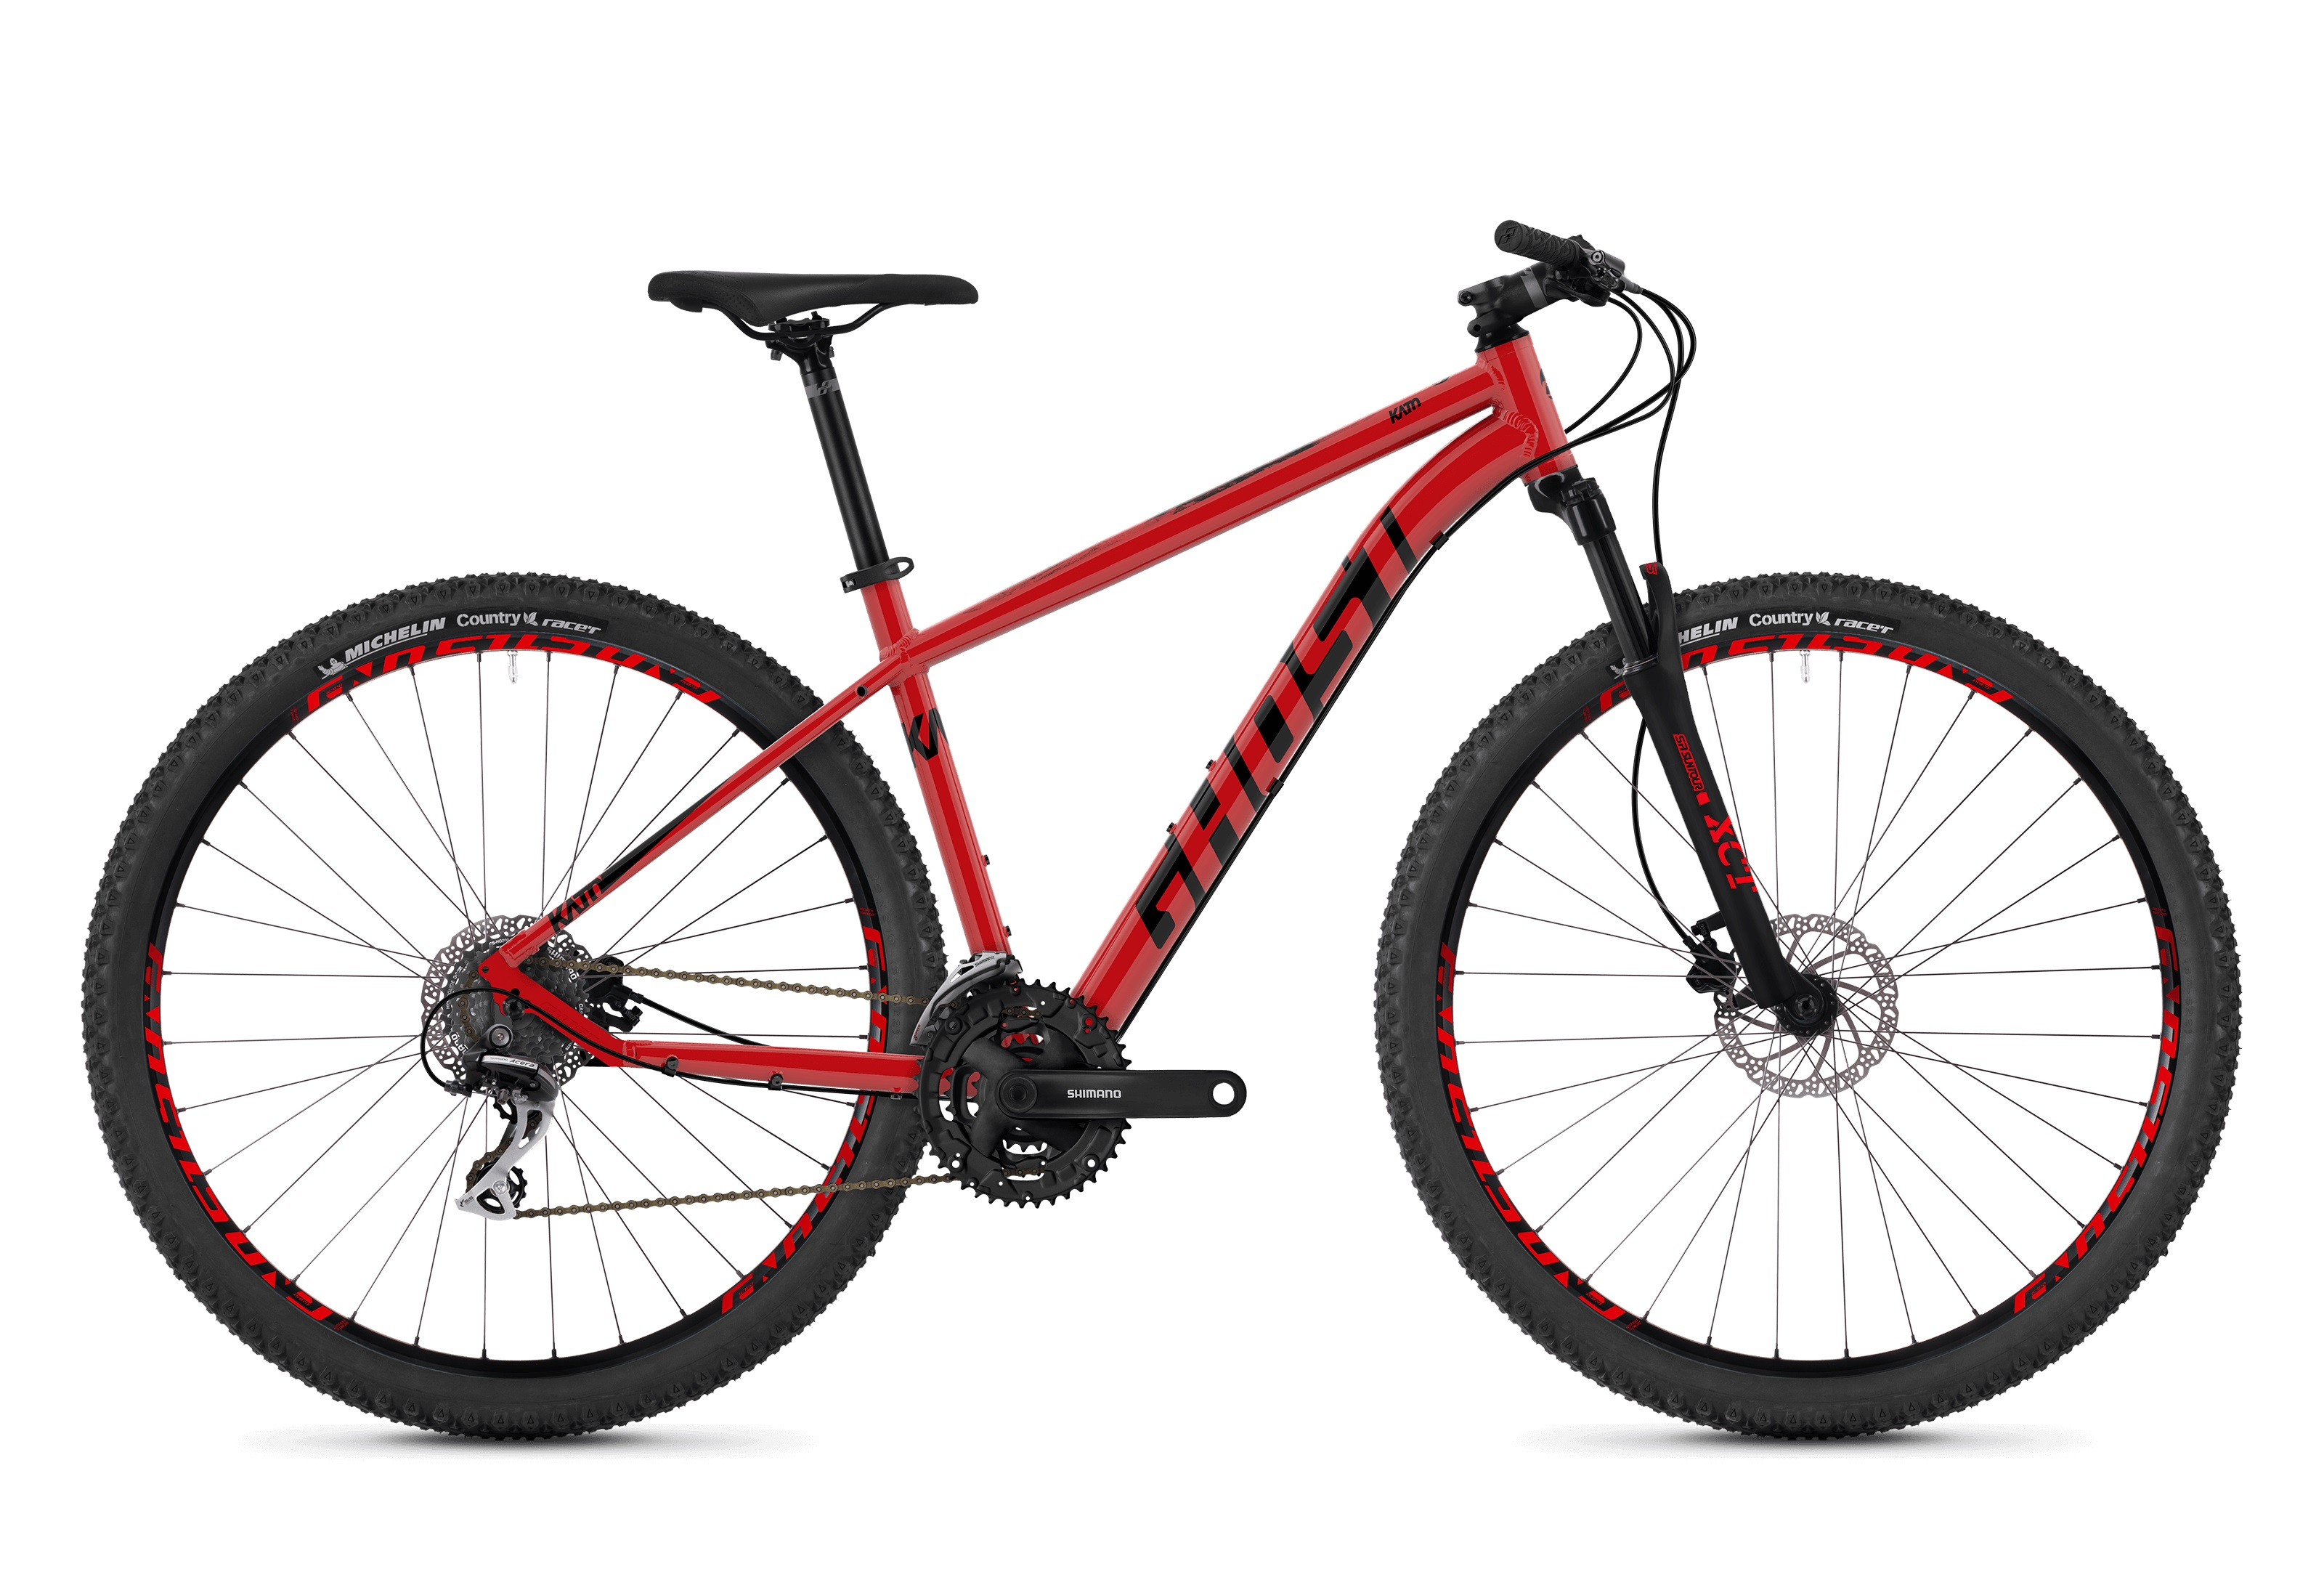 Bicykel GHOST Kato 2.9 riot red / night black 2019